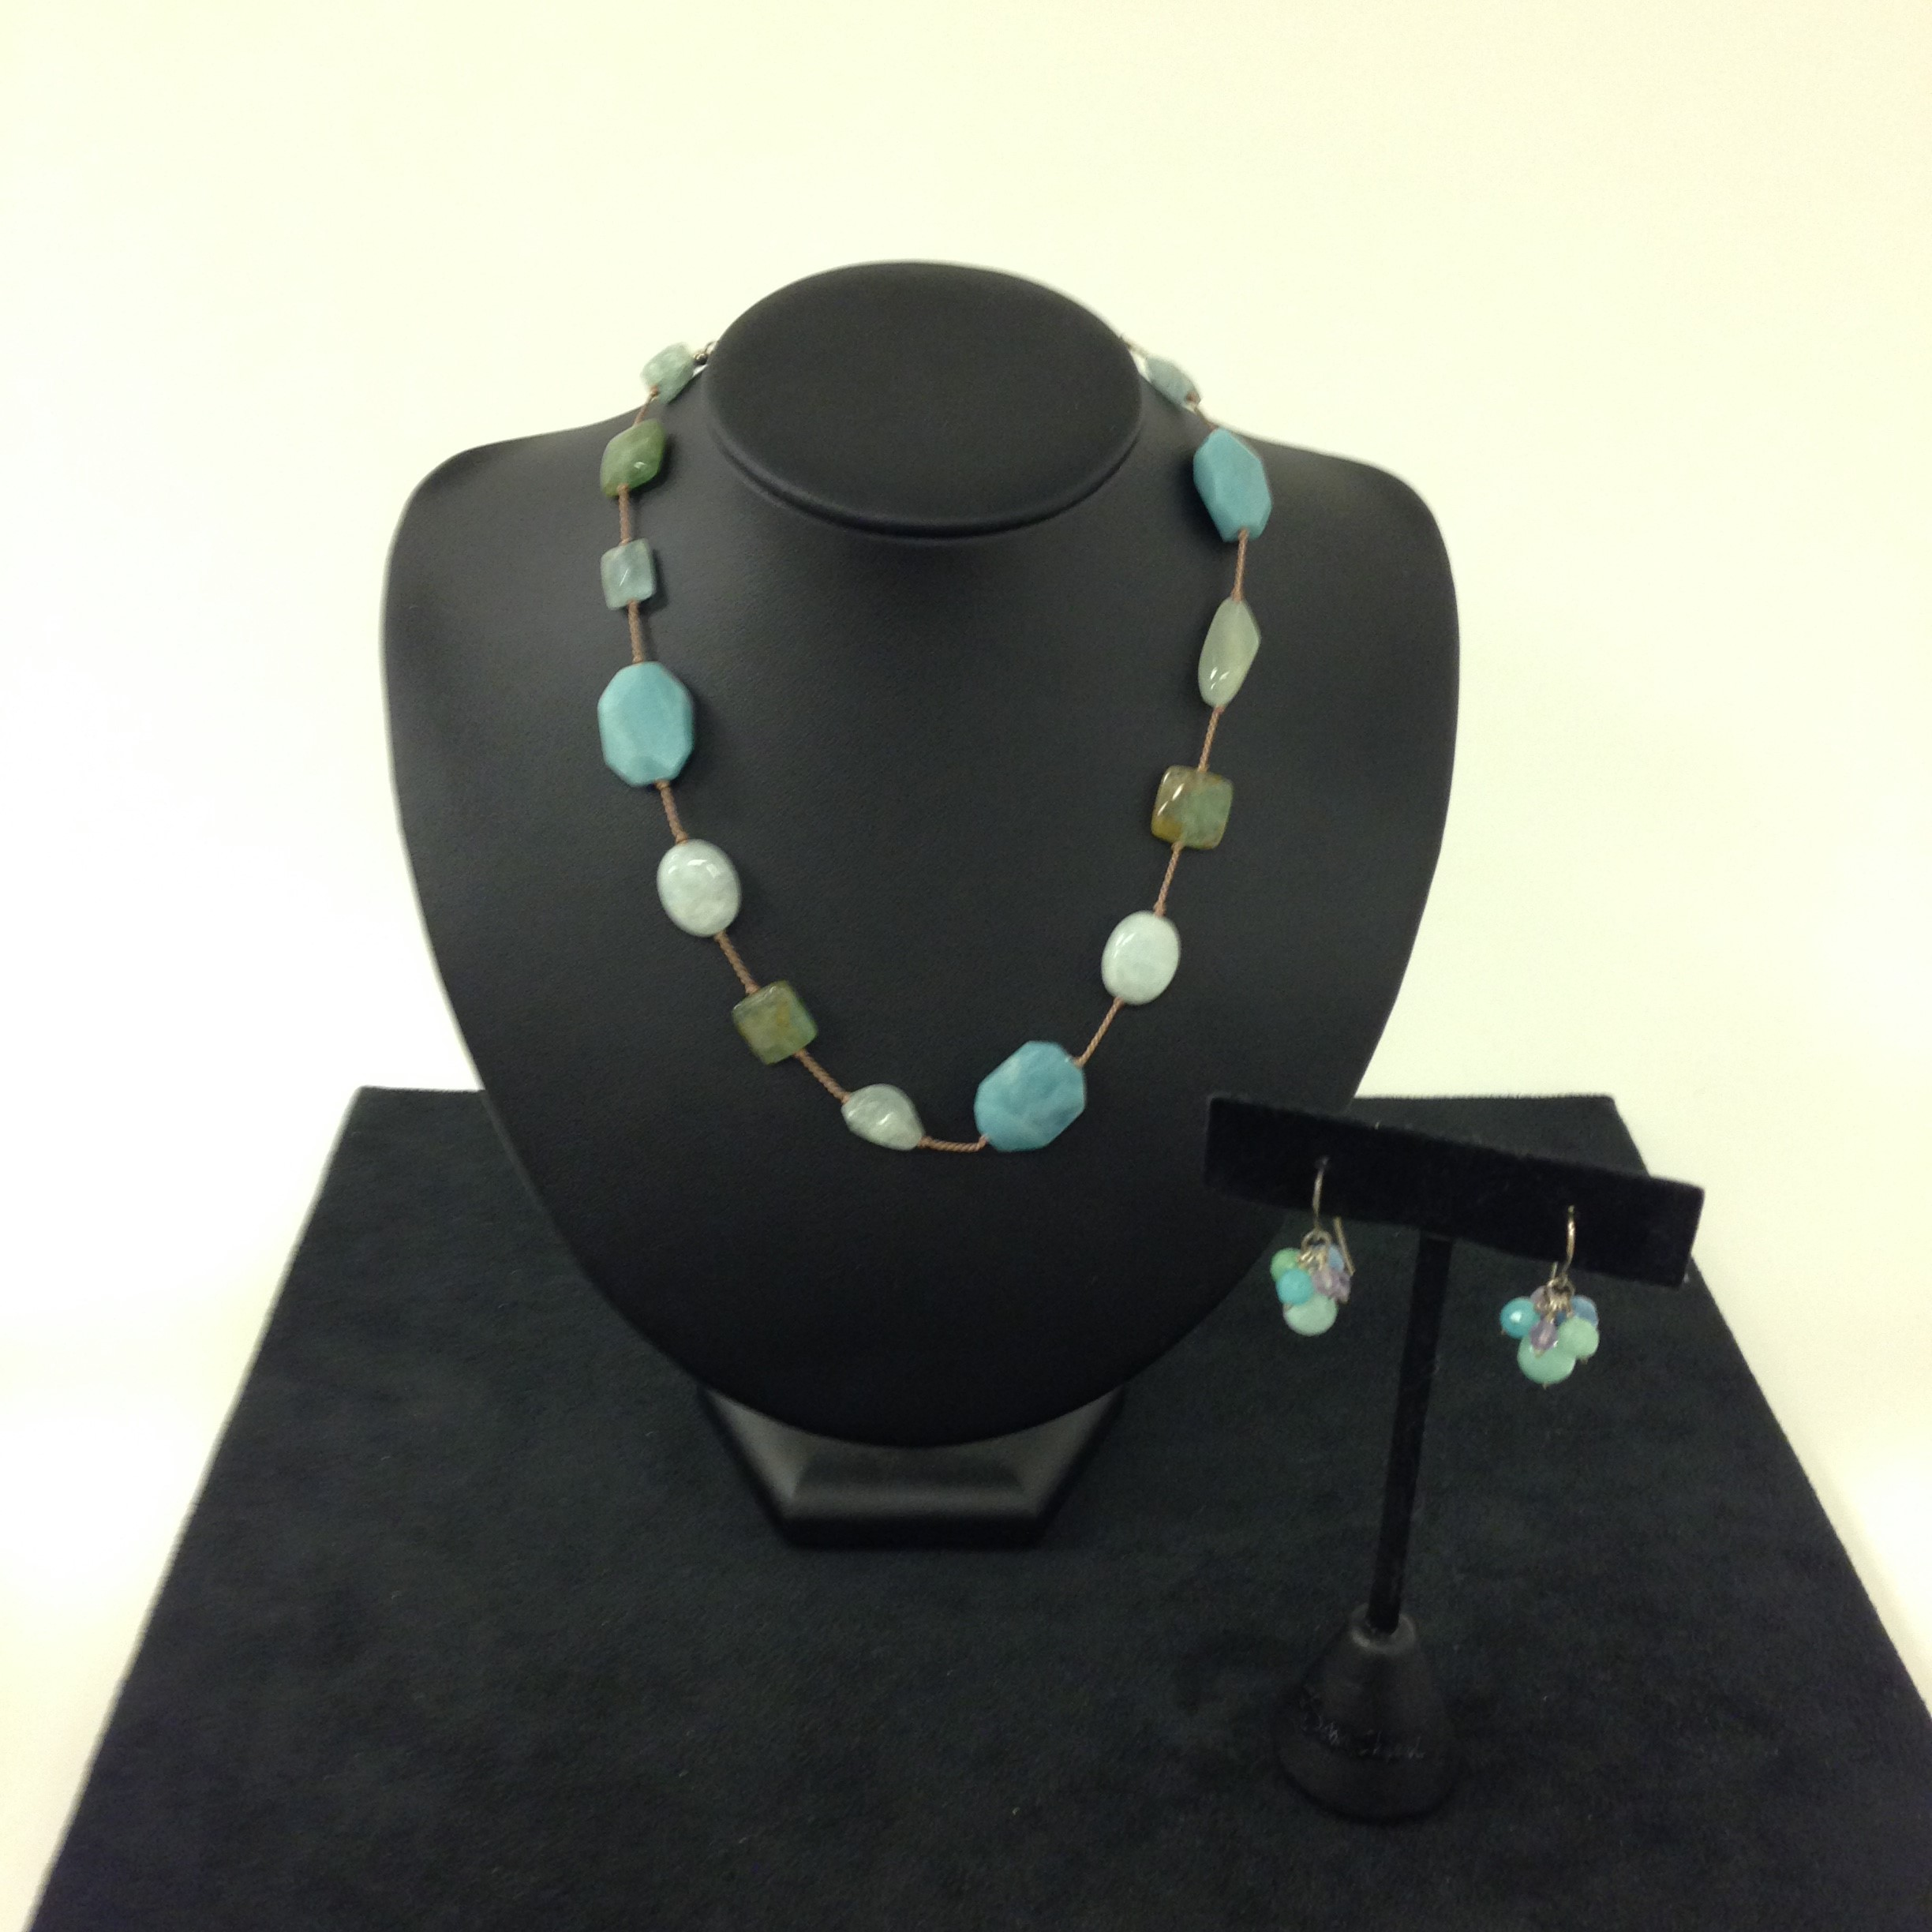 mfa shop jewelry designer trunk show - lynn smith